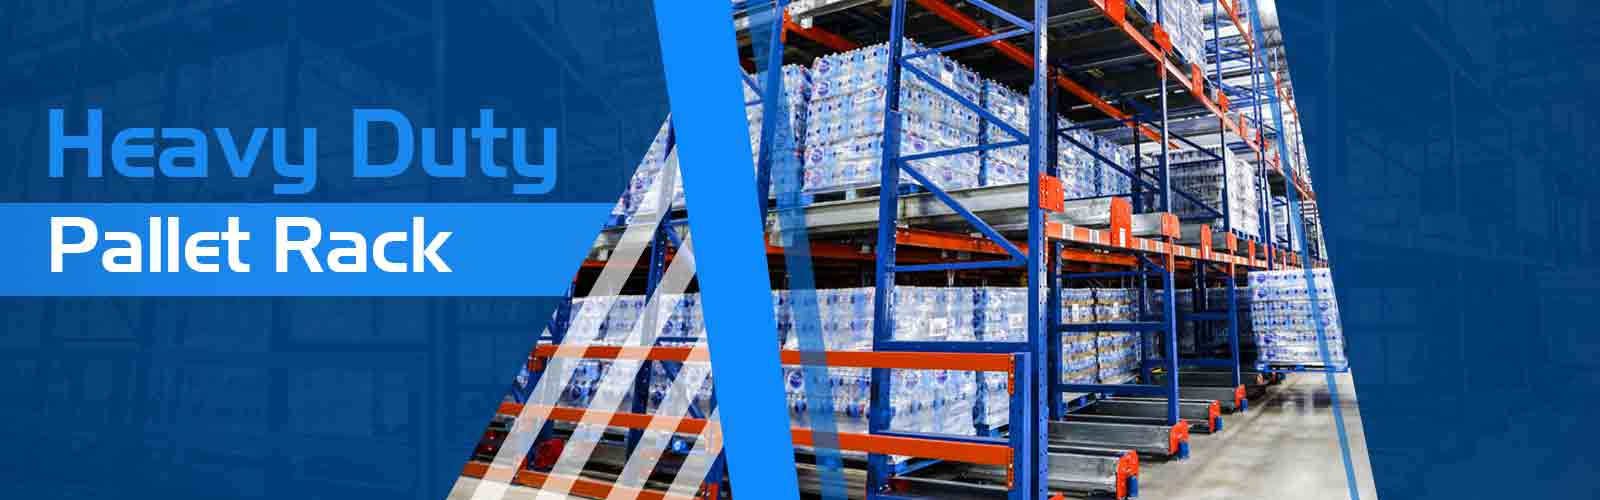 Heavy Duty Pallet Rack Manufacturers In Khushkhera